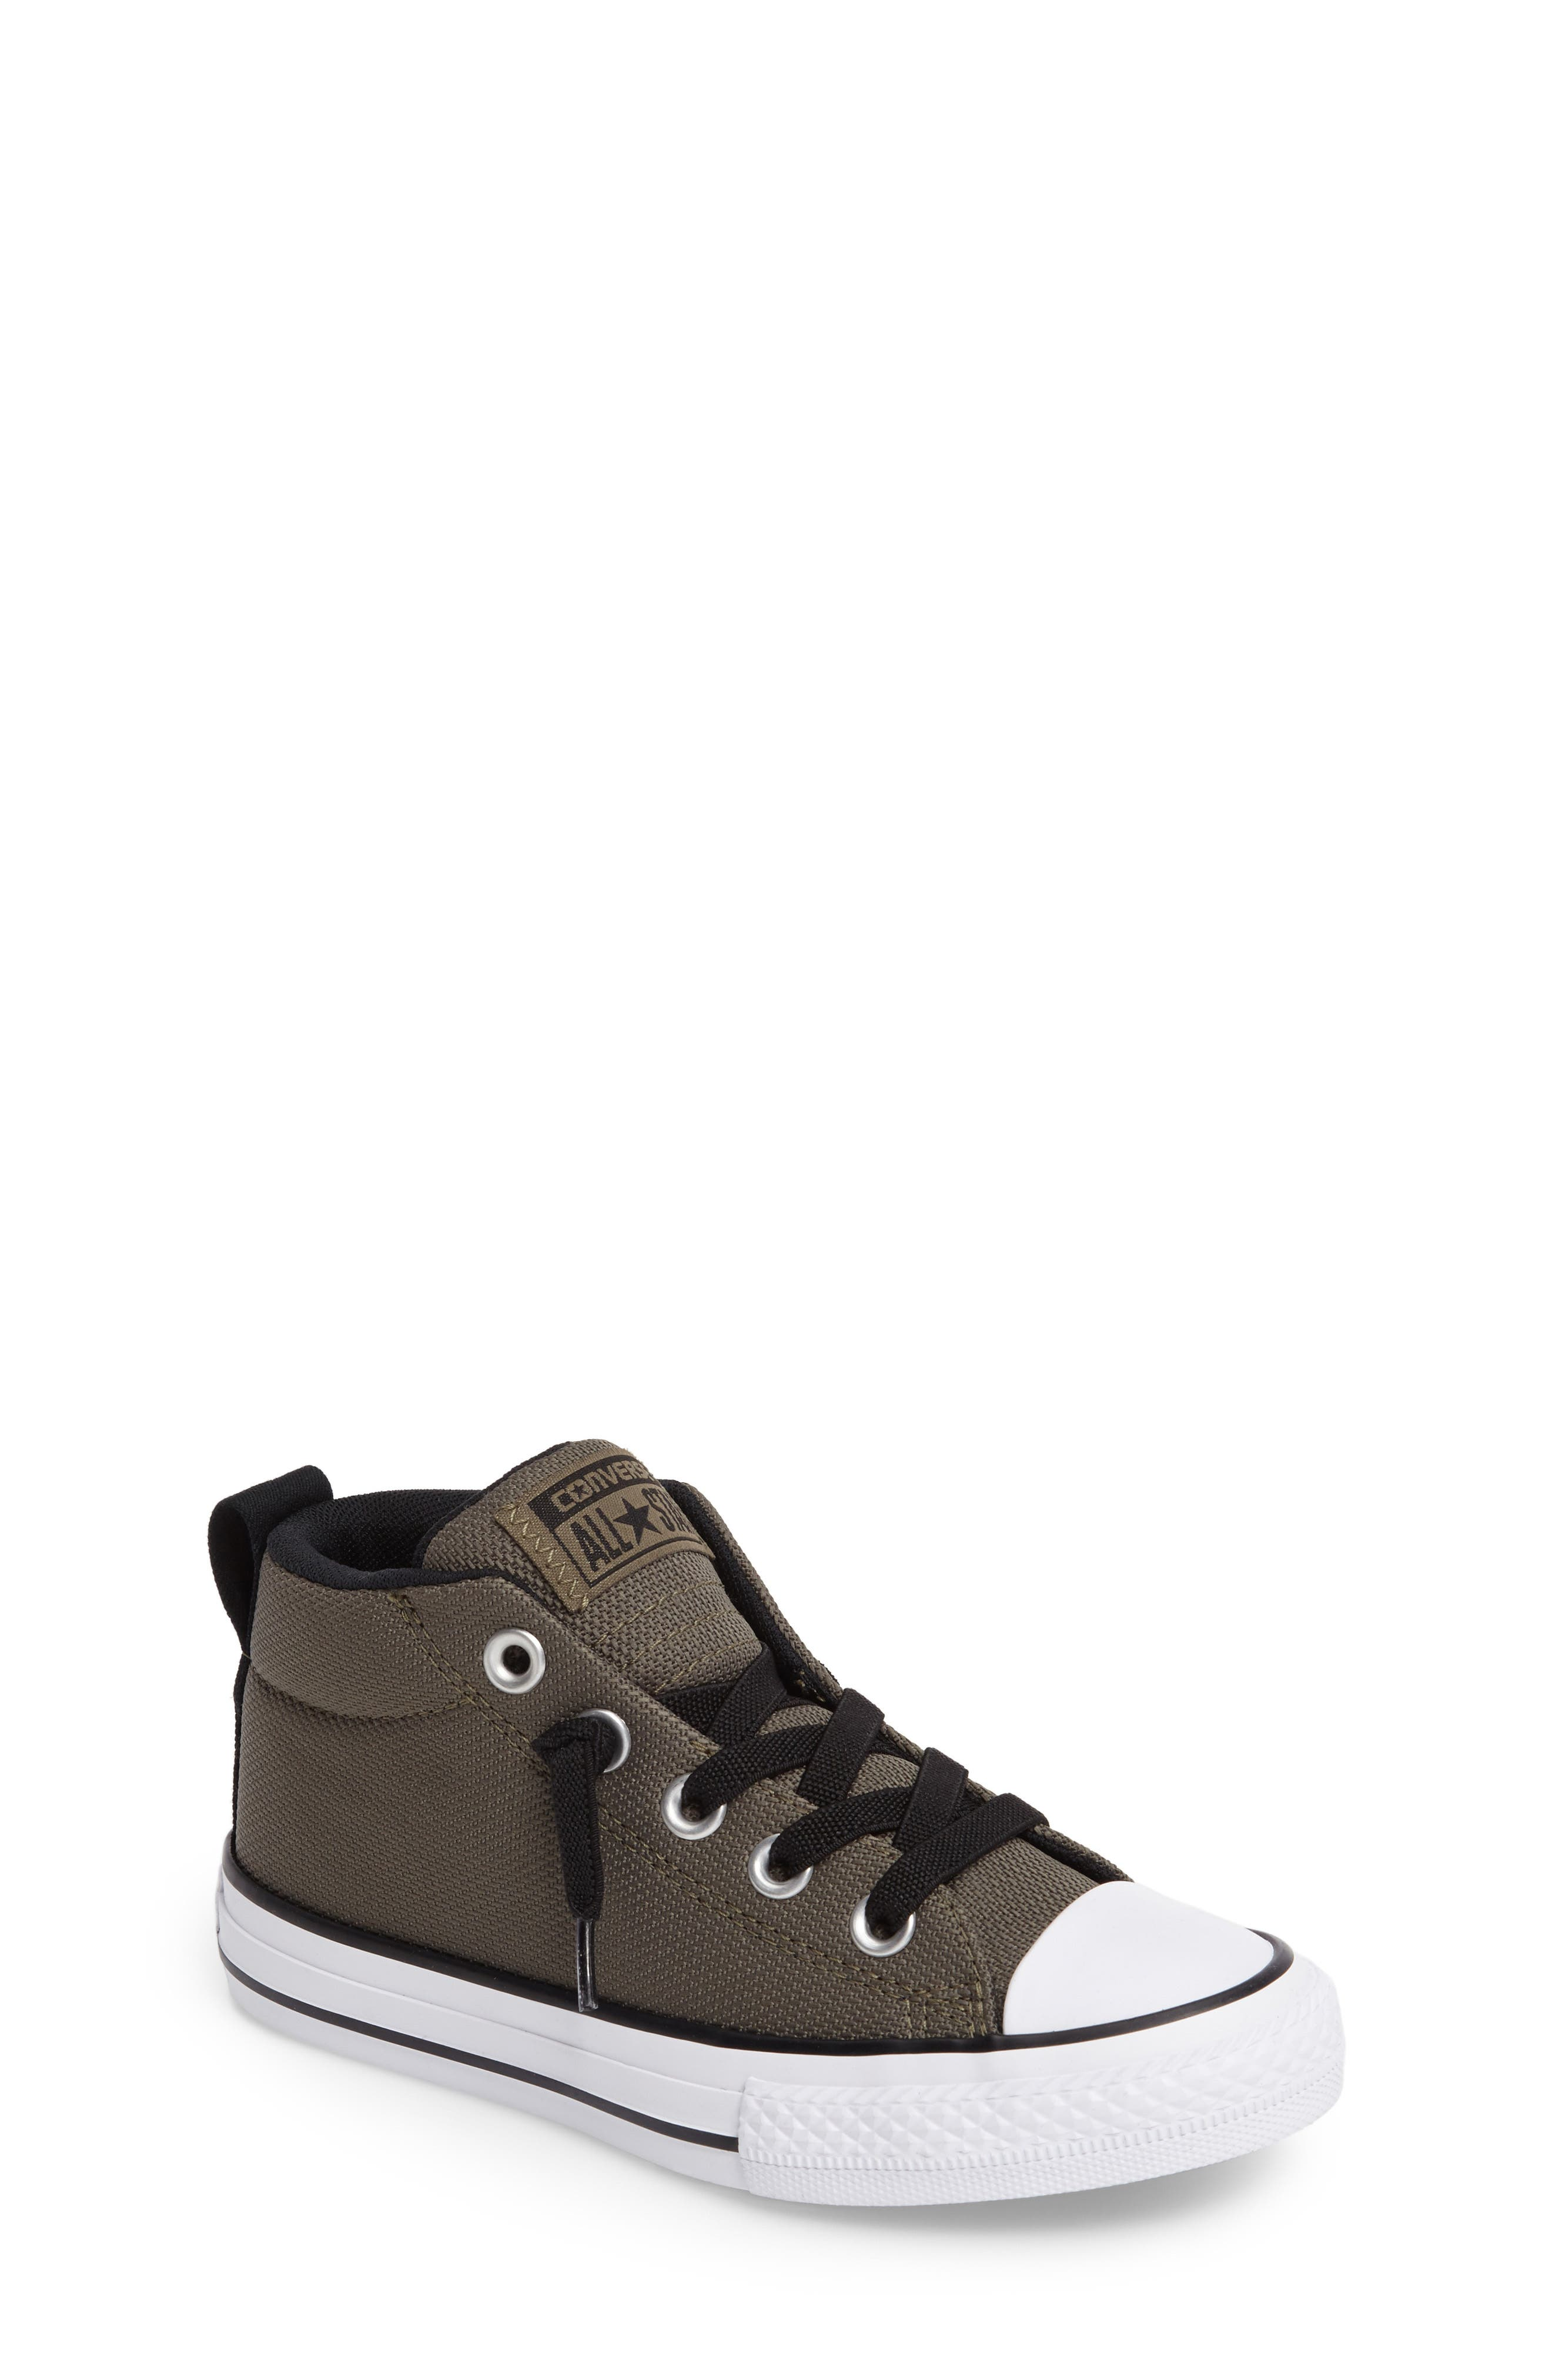 Chuck Taylor<sup>®</sup> All Star<sup>®</sup> Basket Weave Street Mid Sneaker,                             Main thumbnail 1, color,                             342